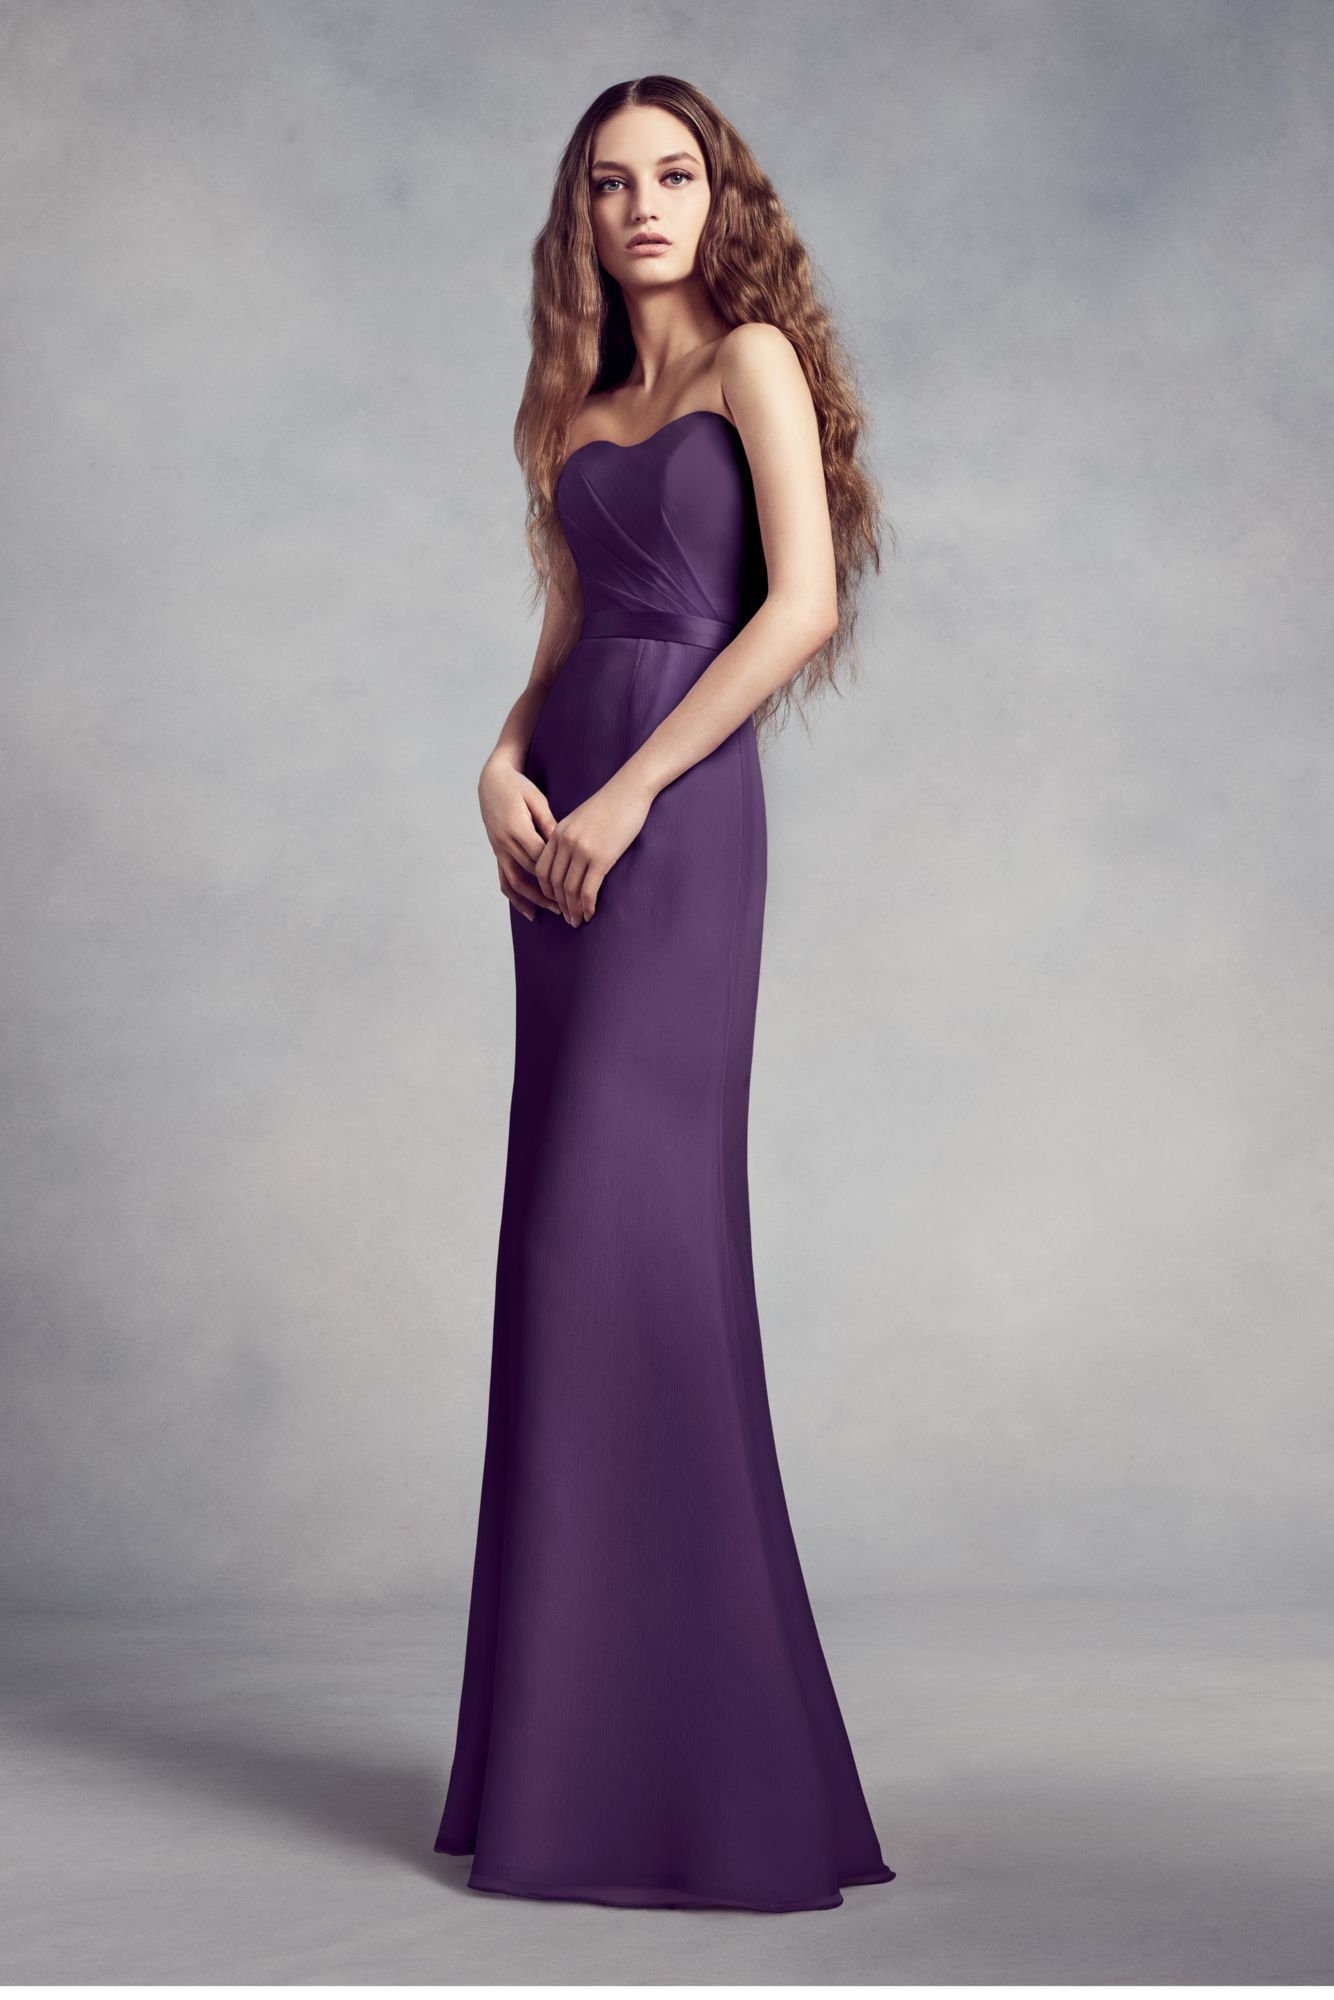 74feb0c3fe8 Strapless Sweetheart Neckline Long Fitted VW360352 Style Bridesmaid Dress  with Lace Back and Insert